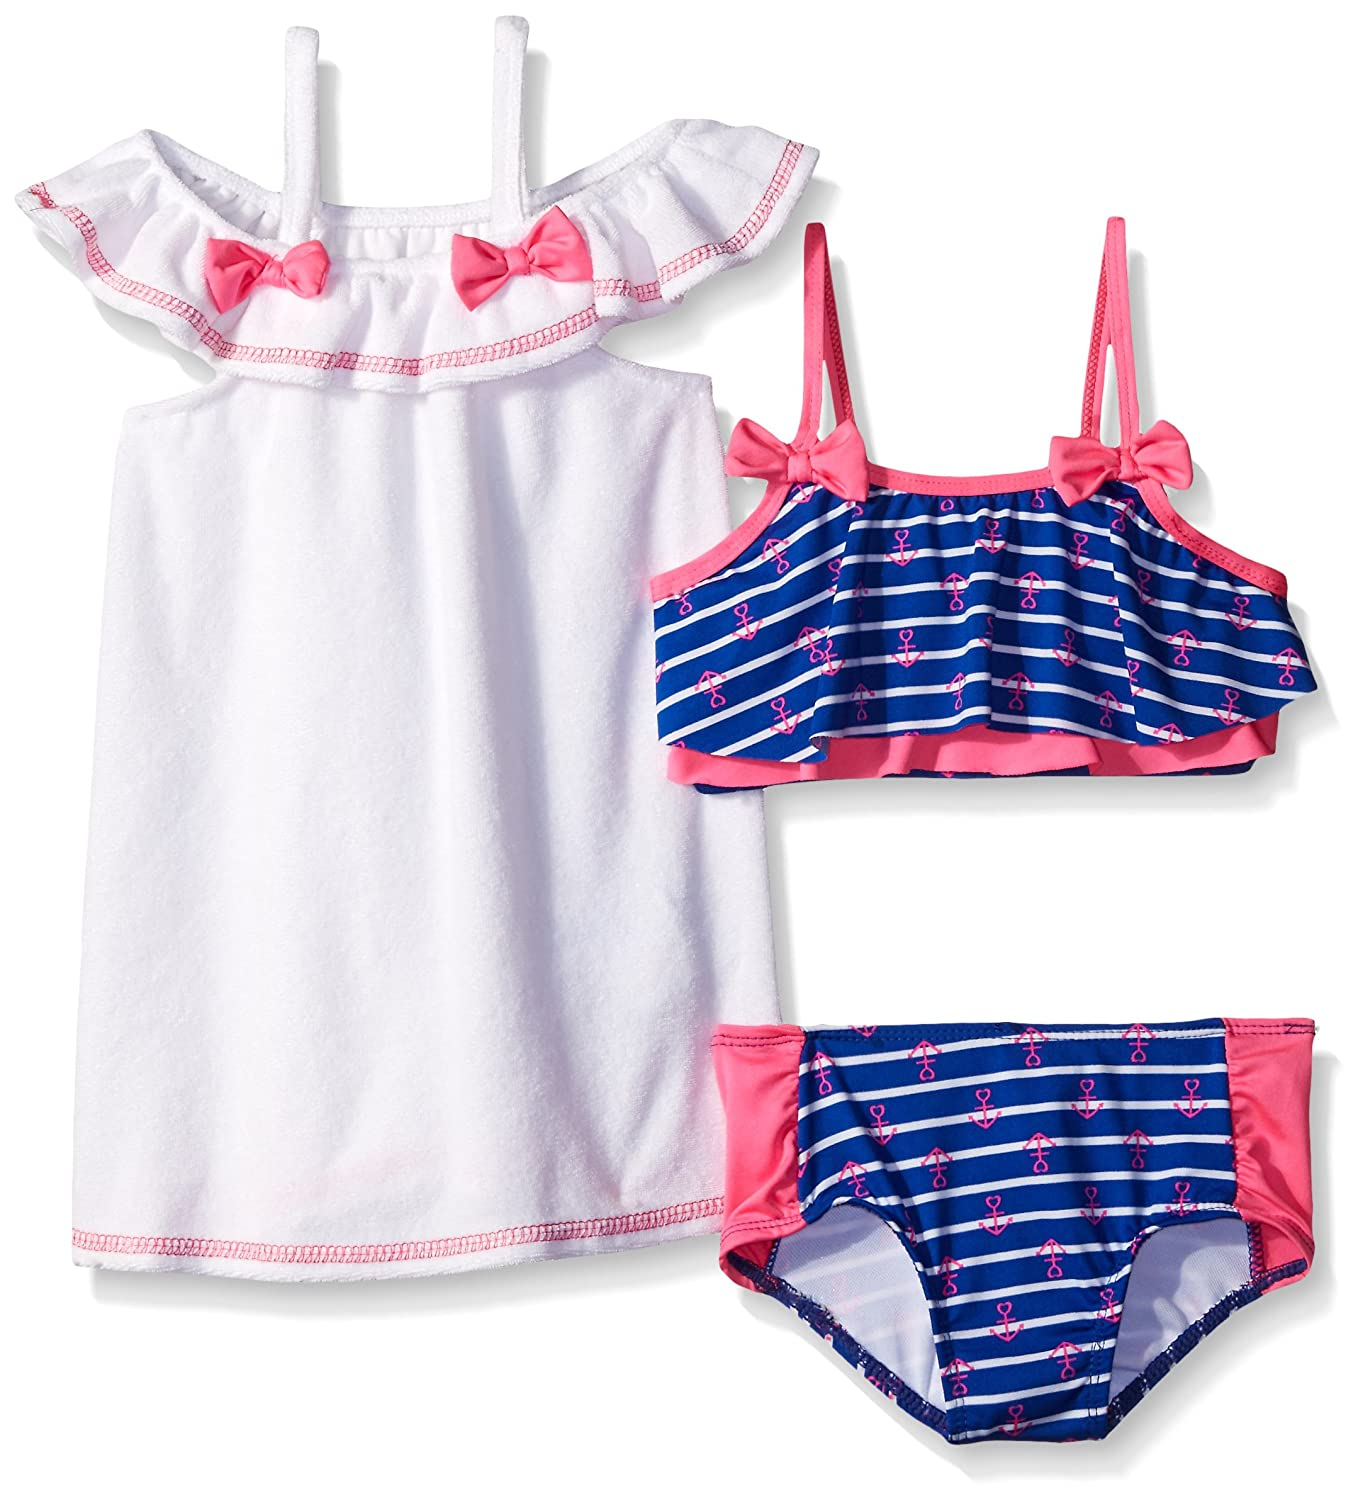 Baby Buns Girls' Sail Away Terry Cover-up Swimwear Set Multi 6 W43773